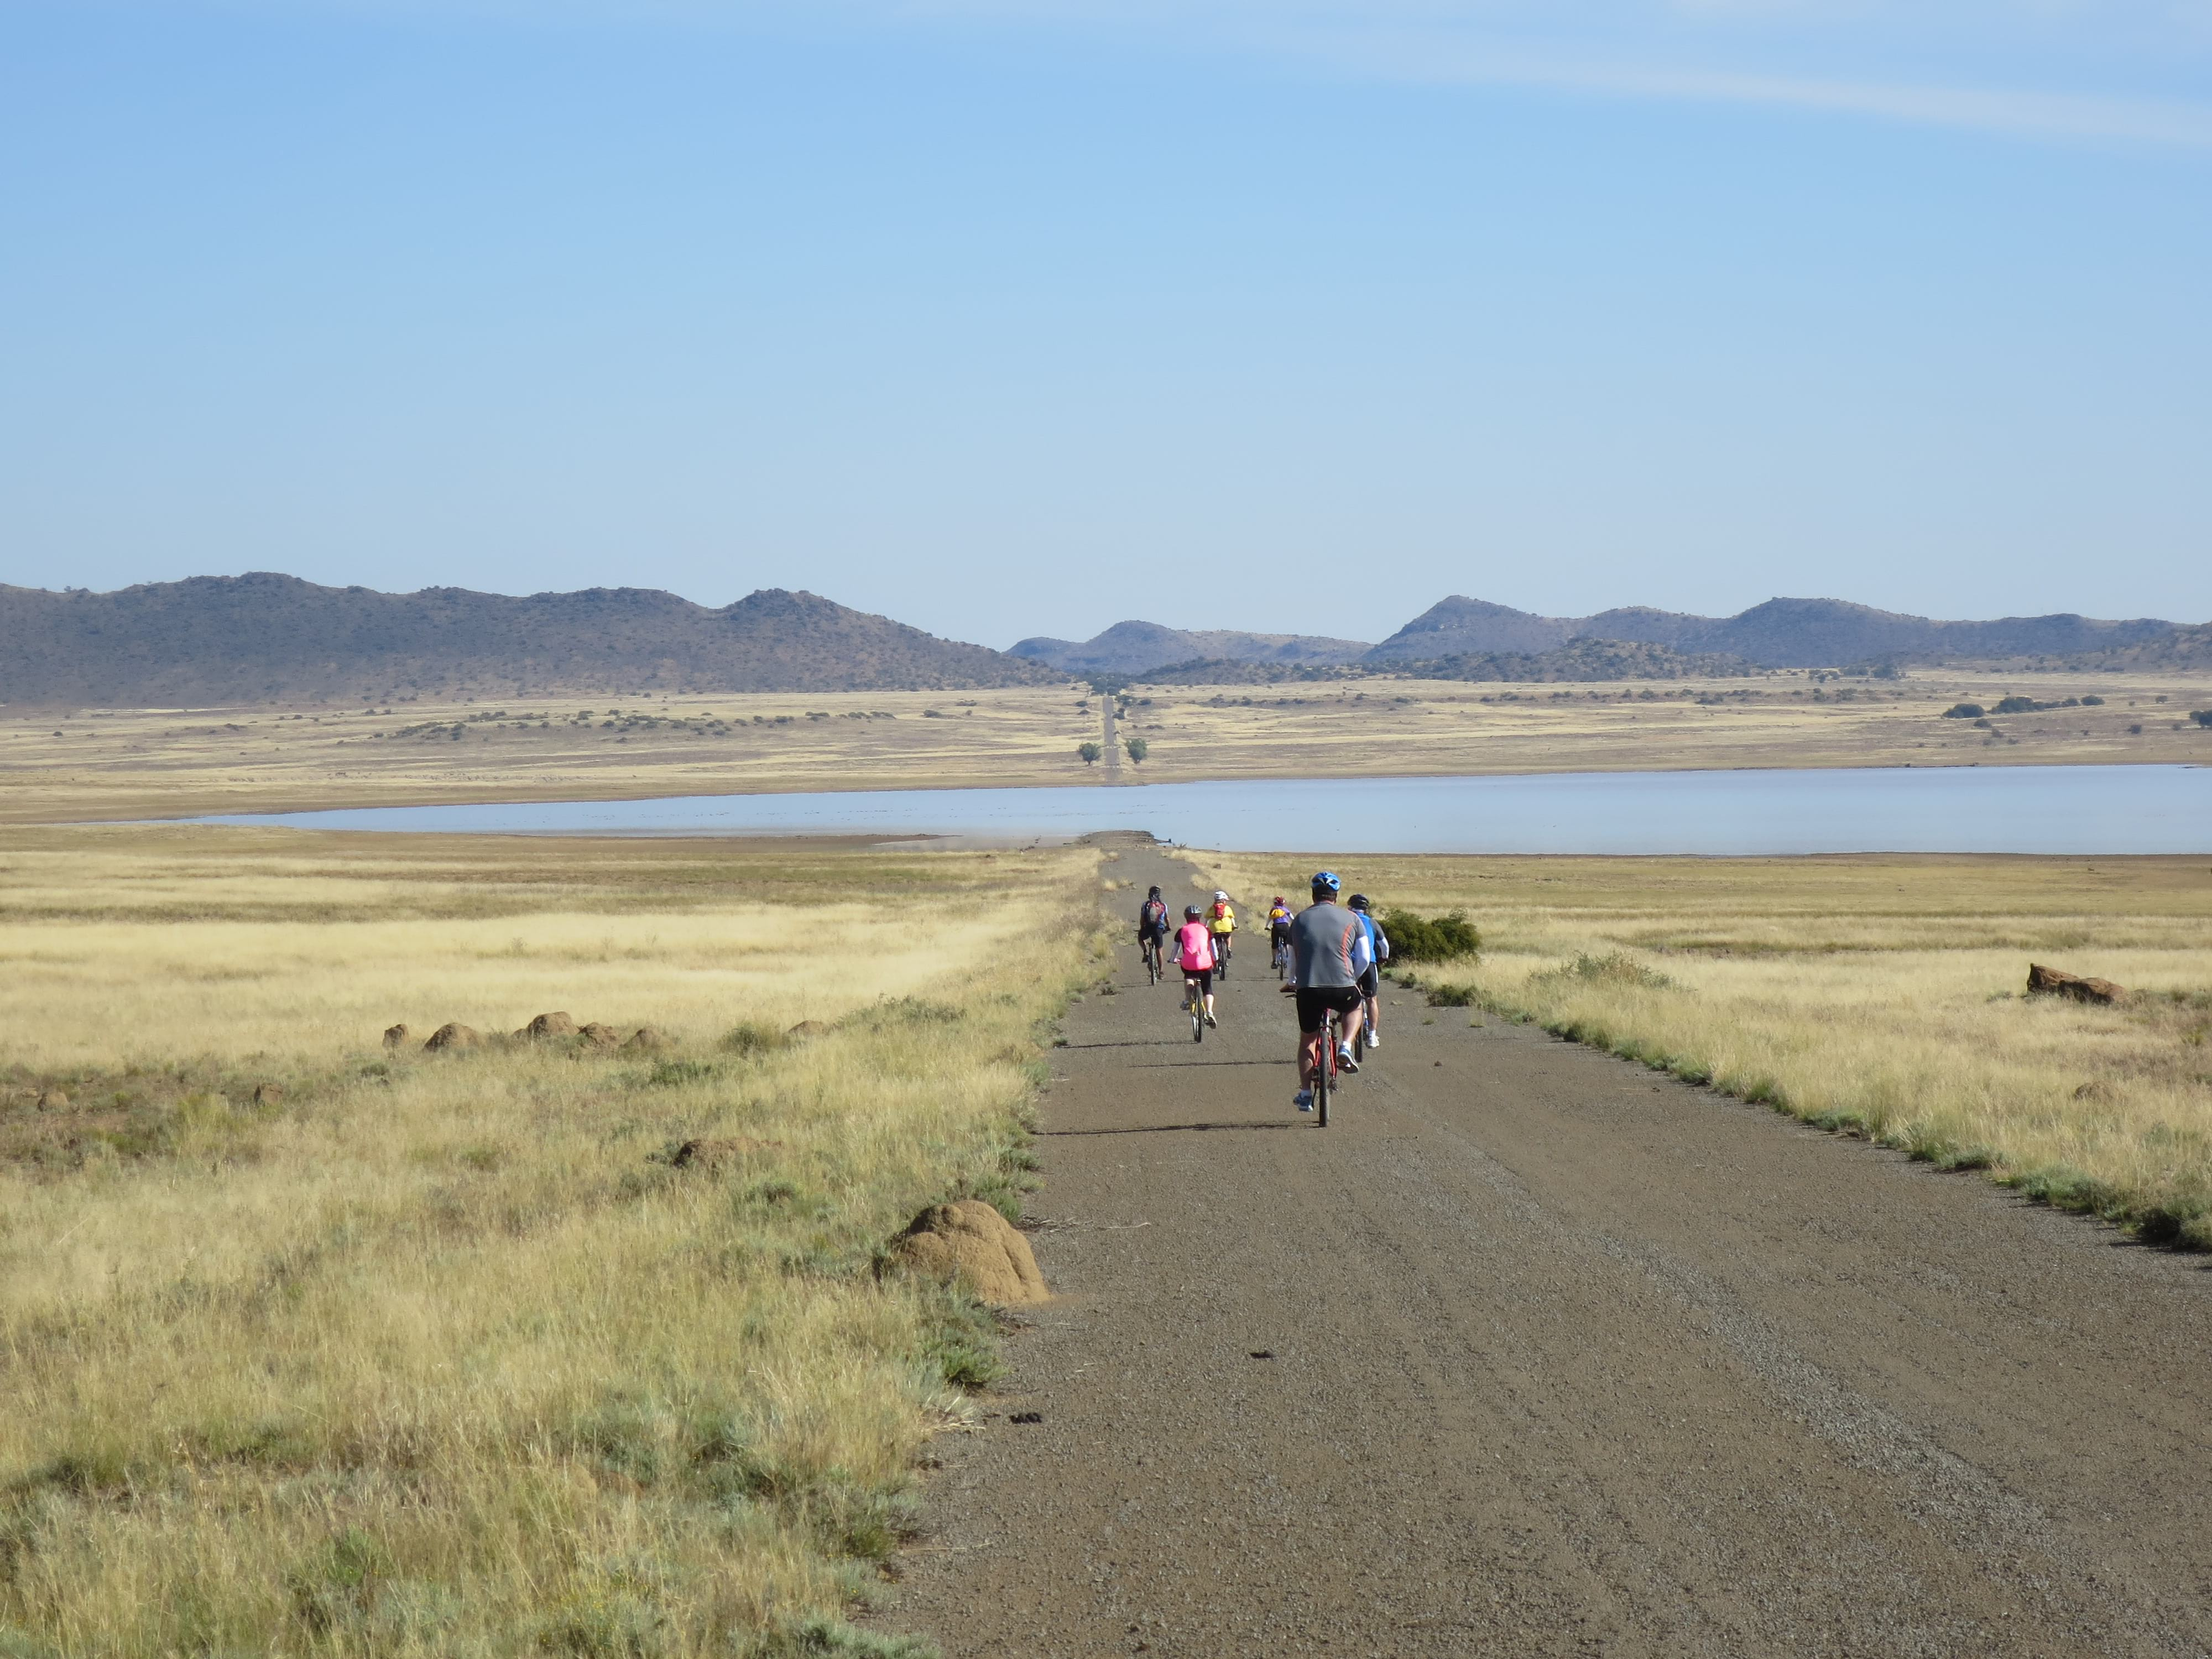 The team in the open spaces of the Karoo